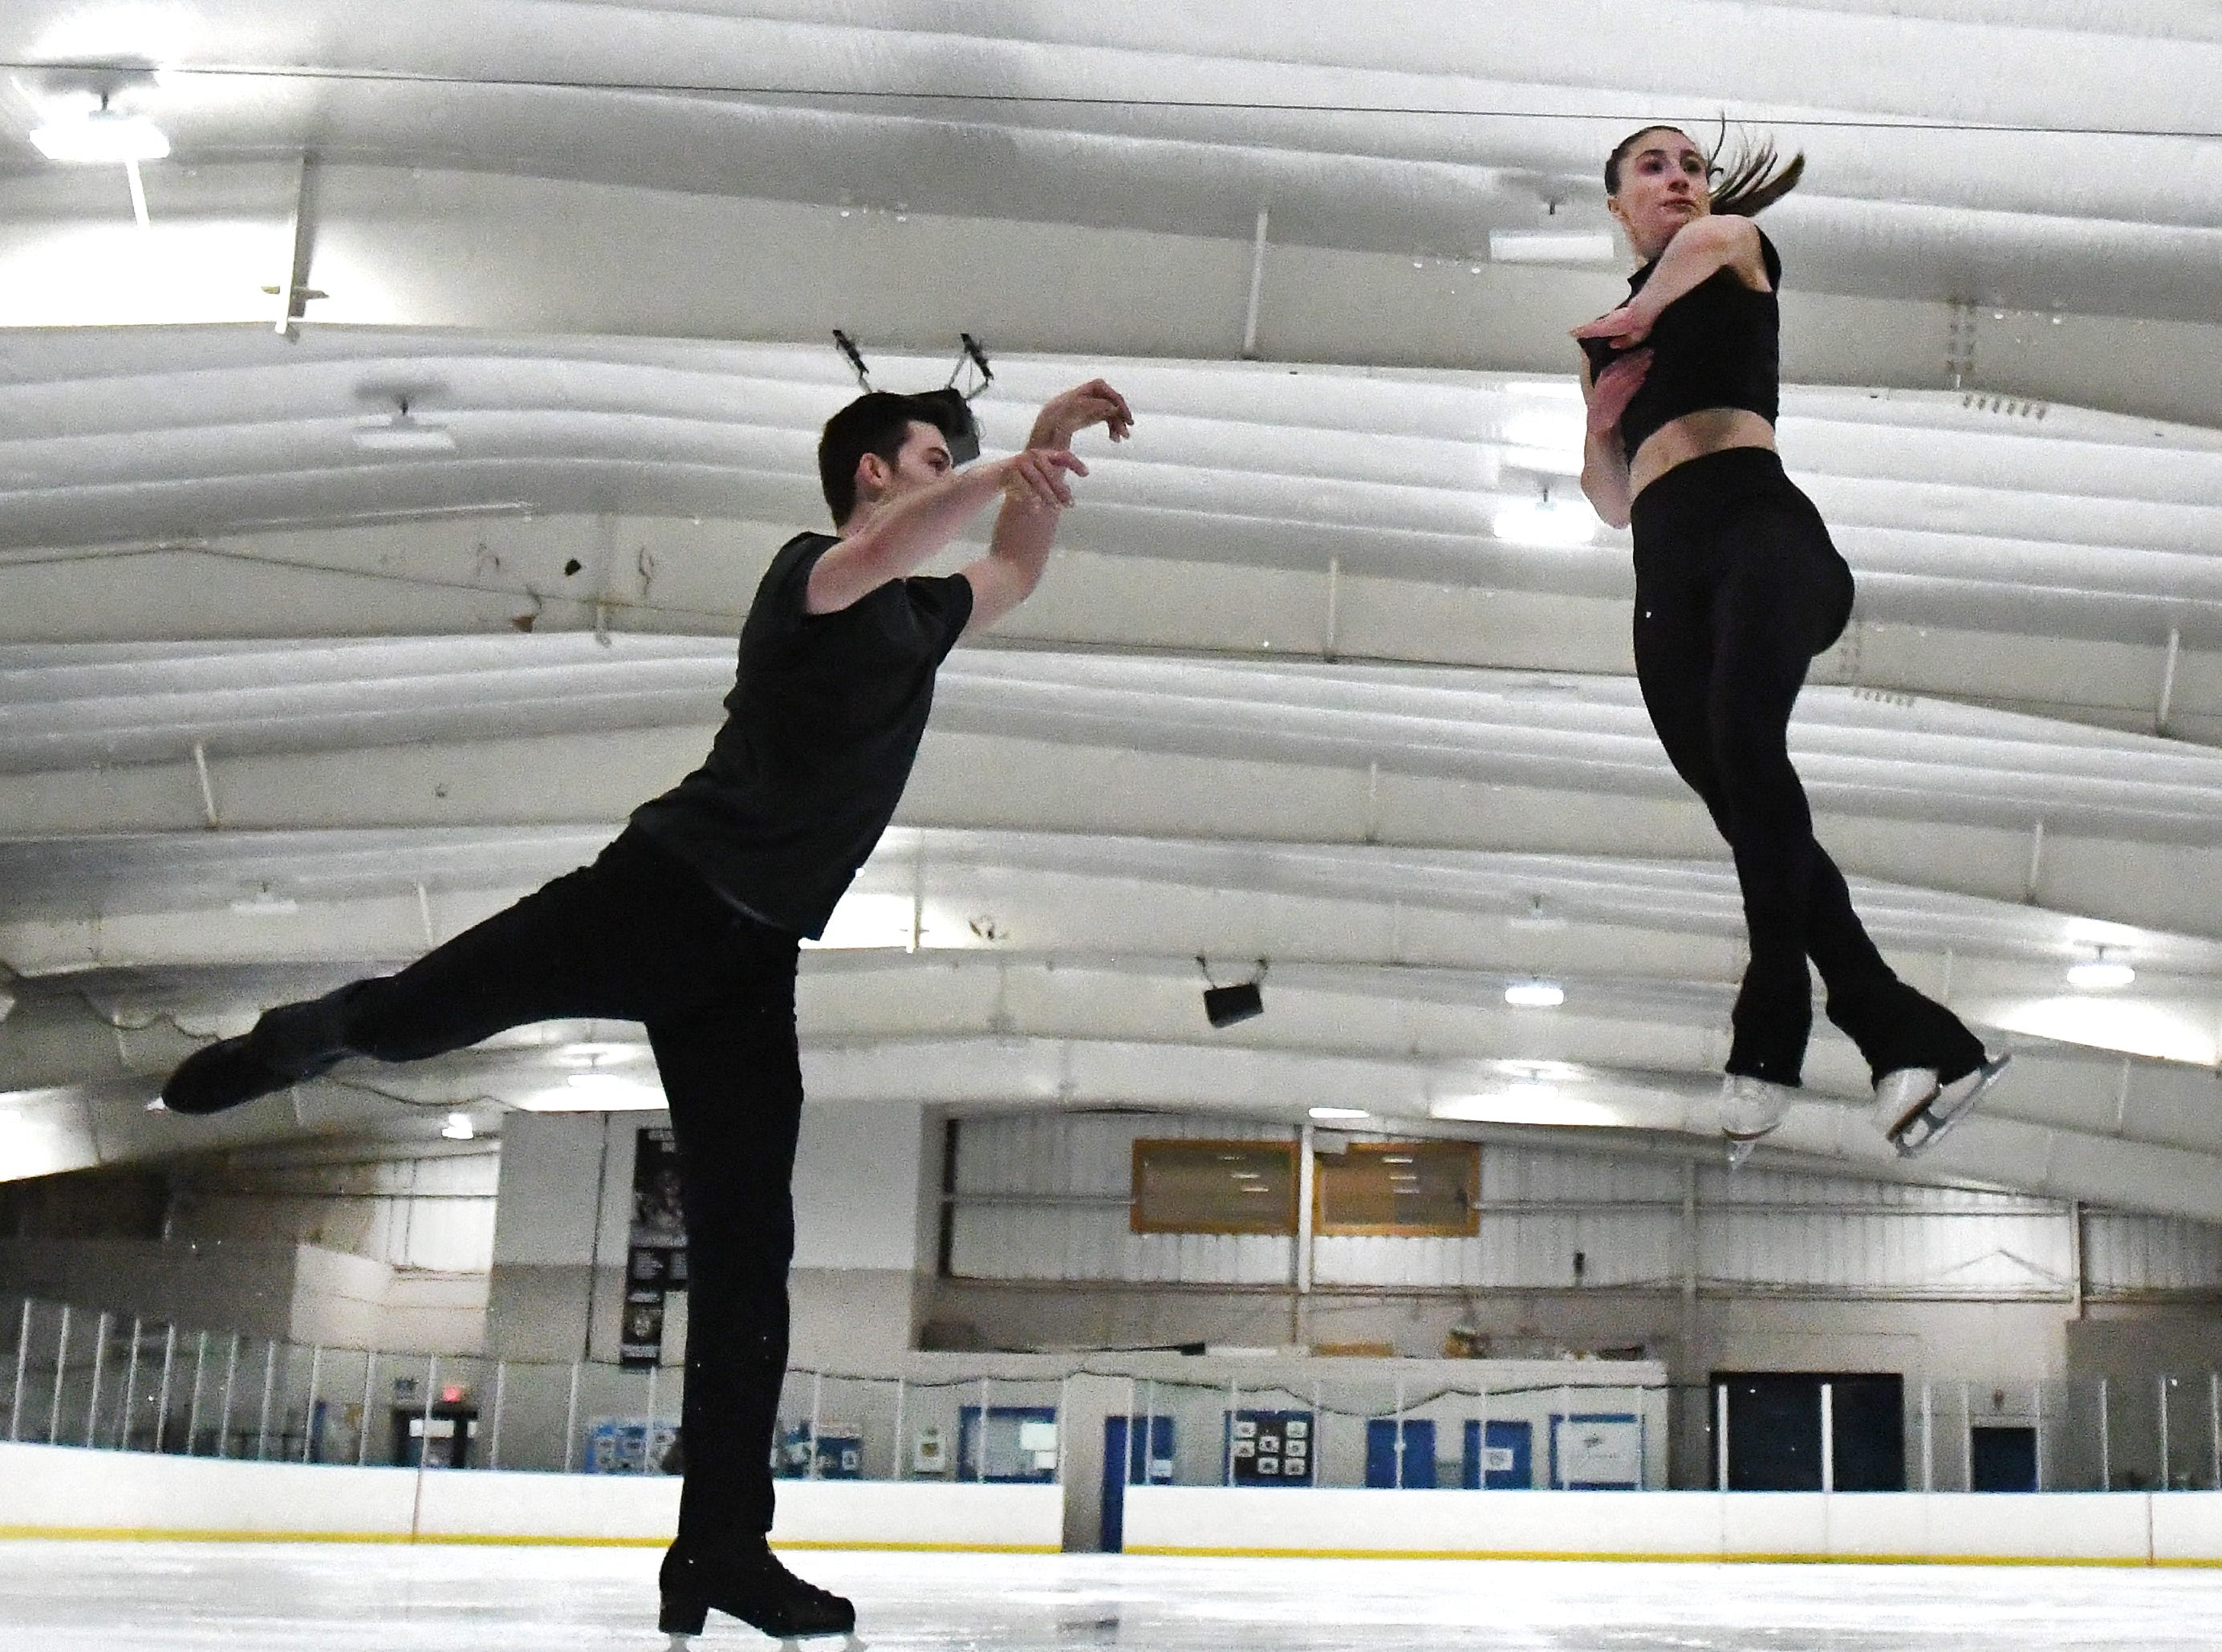 Pairs figure skaters, Midland's Keyton Bearinger and his partner Isabelle Goldstein, of Bloomfield Hills, practice at the Detroit Skating Club in Bloomfield Hills, Michigan on January 16, 2019.